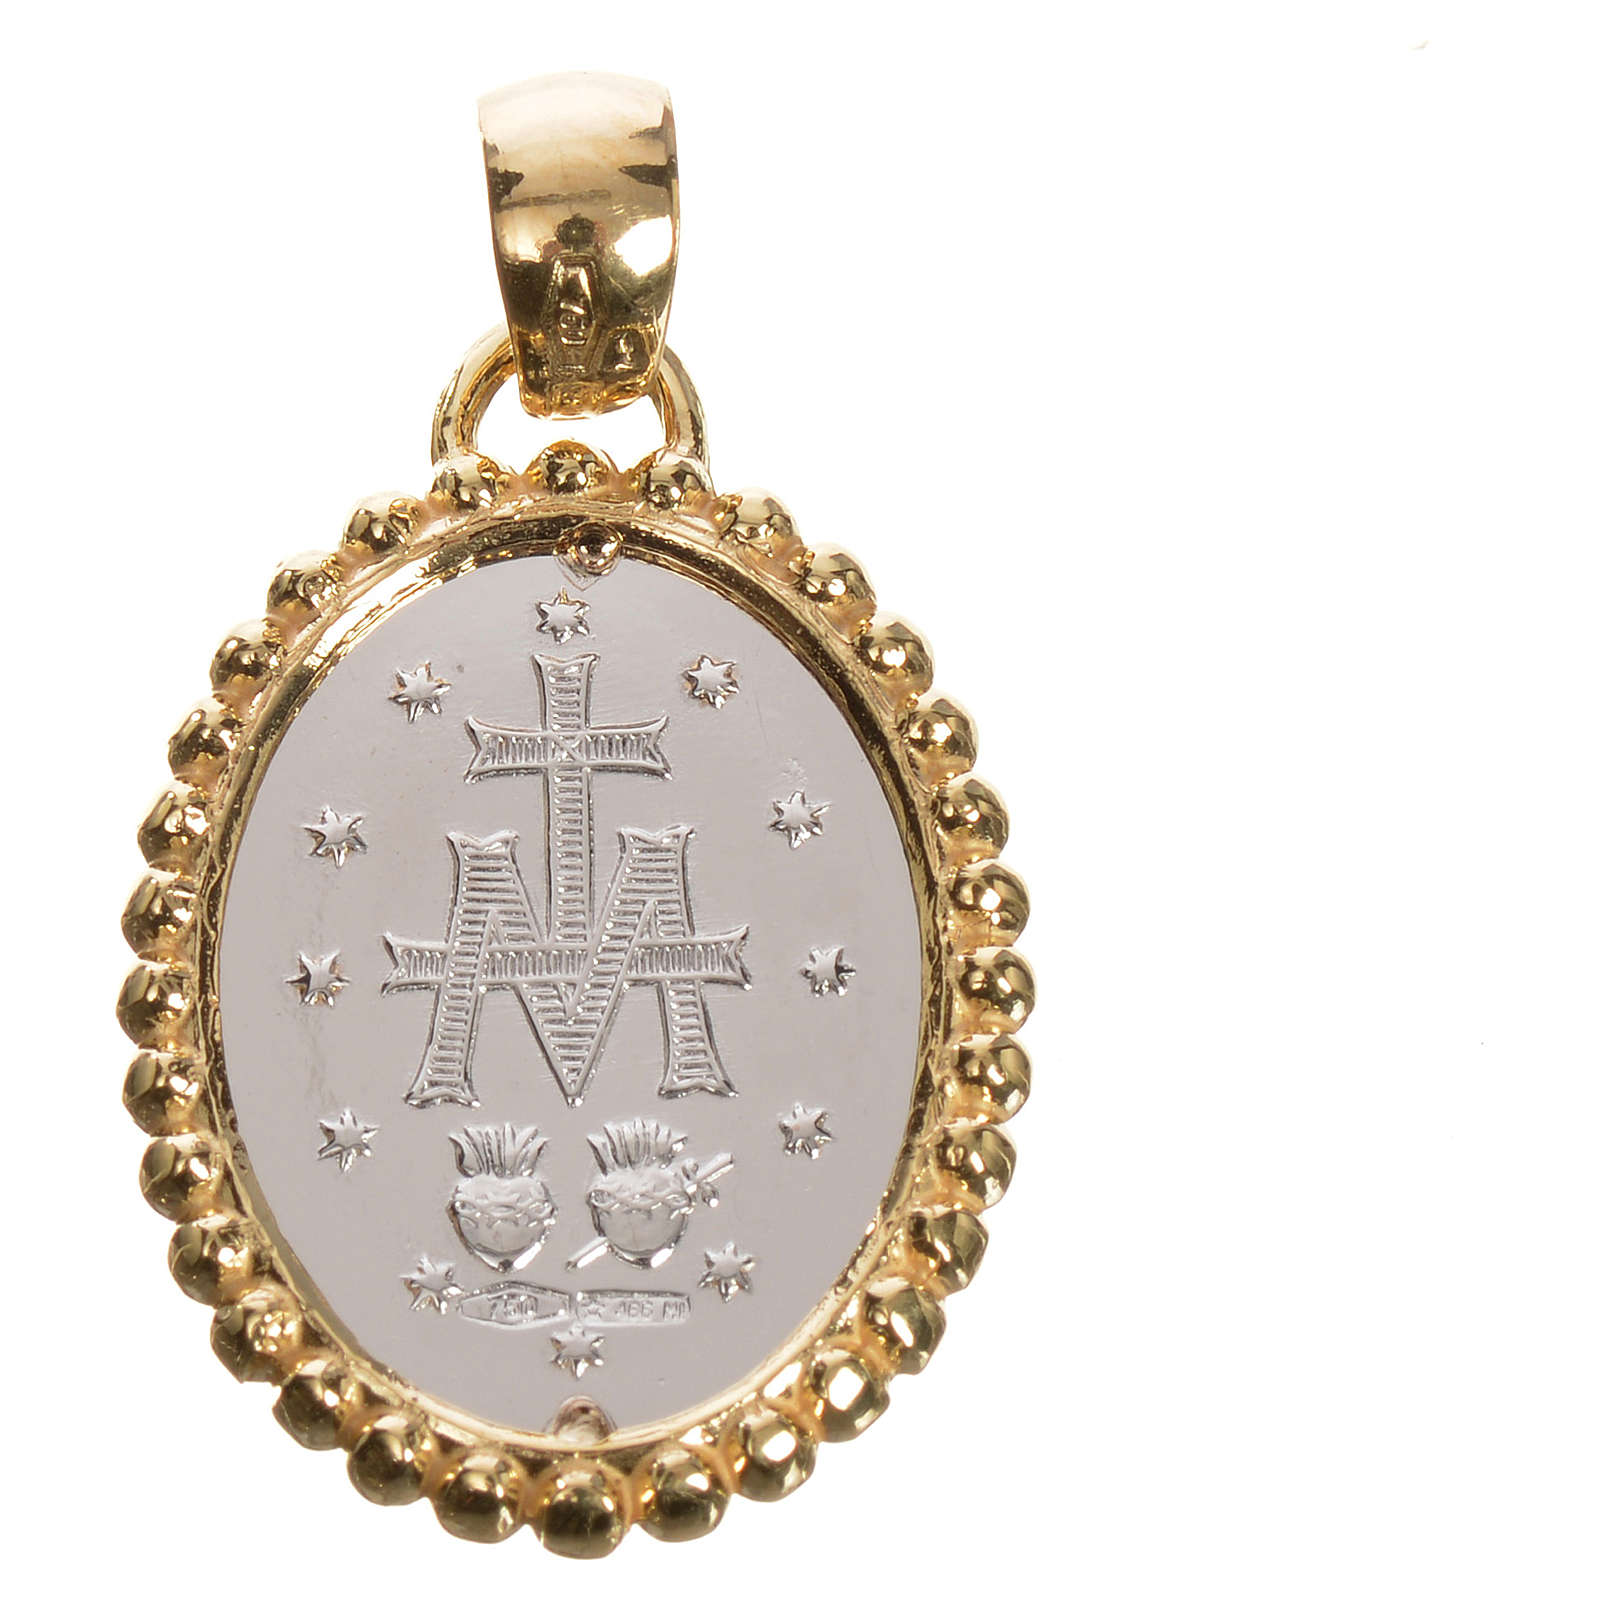 Miraculous medal in 750 gold with yellow outline 2.69gr 4